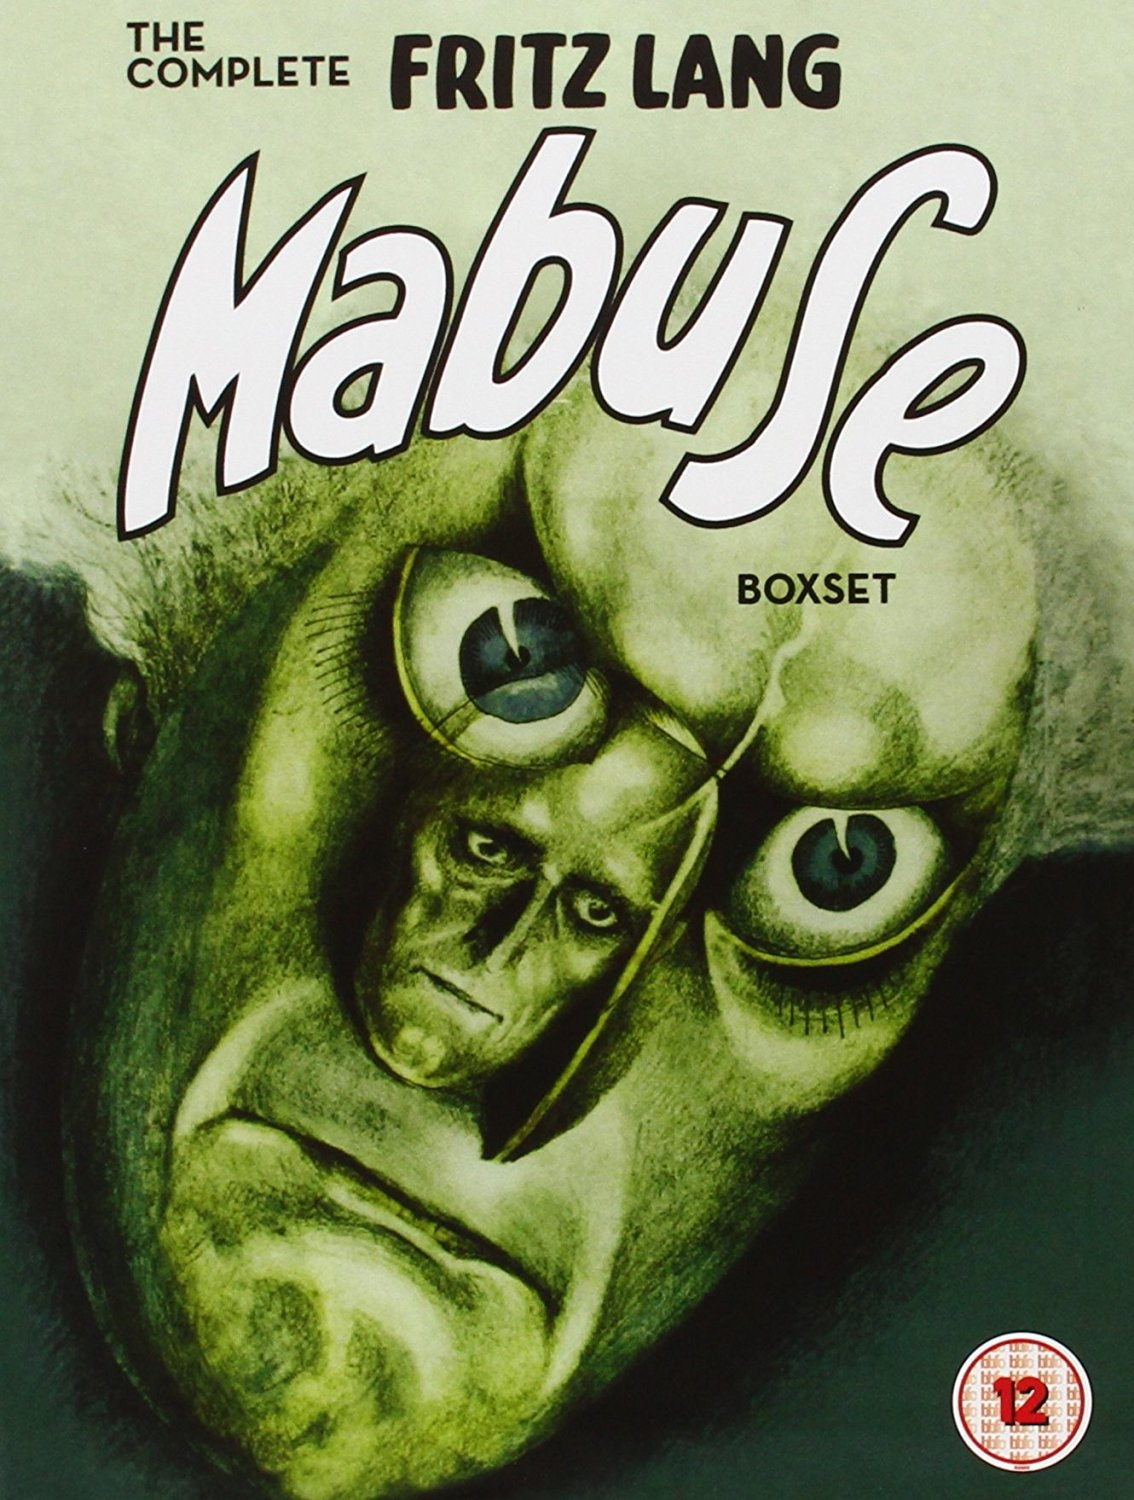 Buy The Complete Fritz Lang Mabuse Collection (4 DVD Box Set)